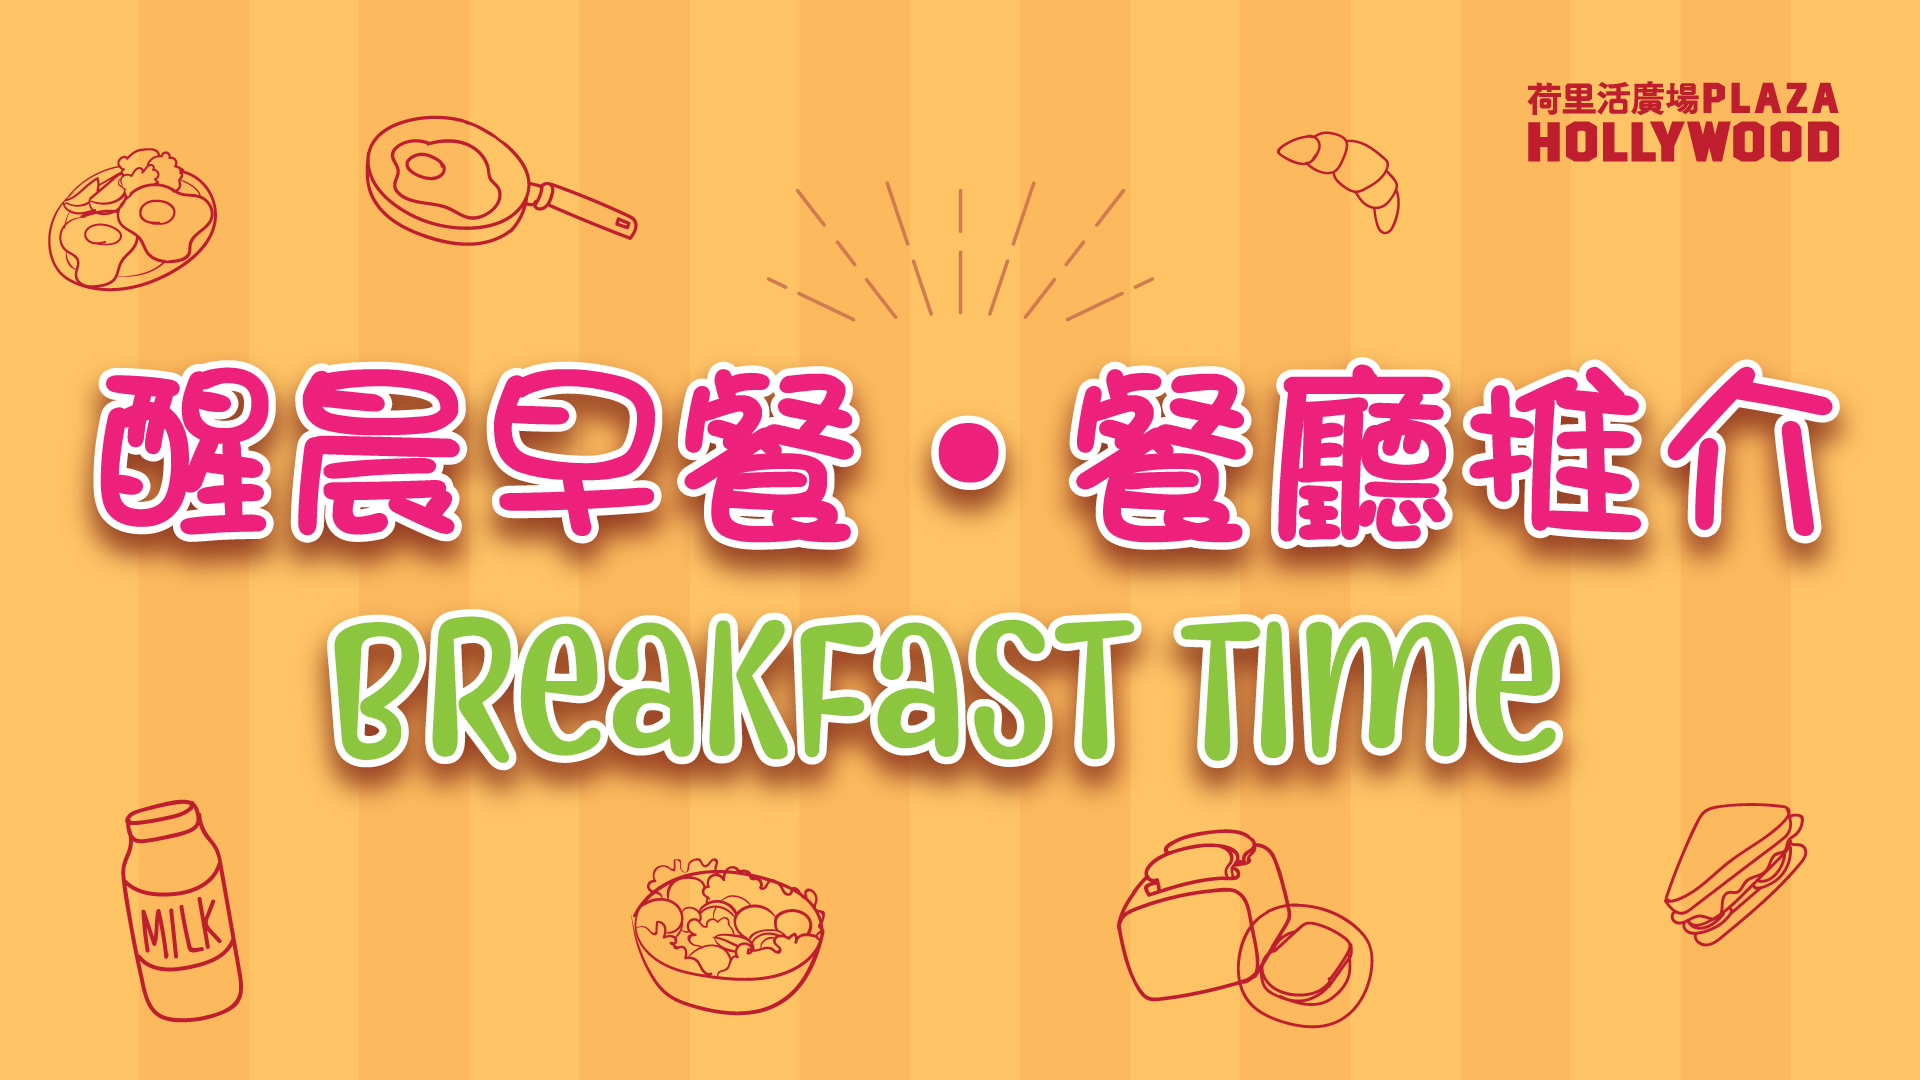 Breakfast Time Restaurants Guide